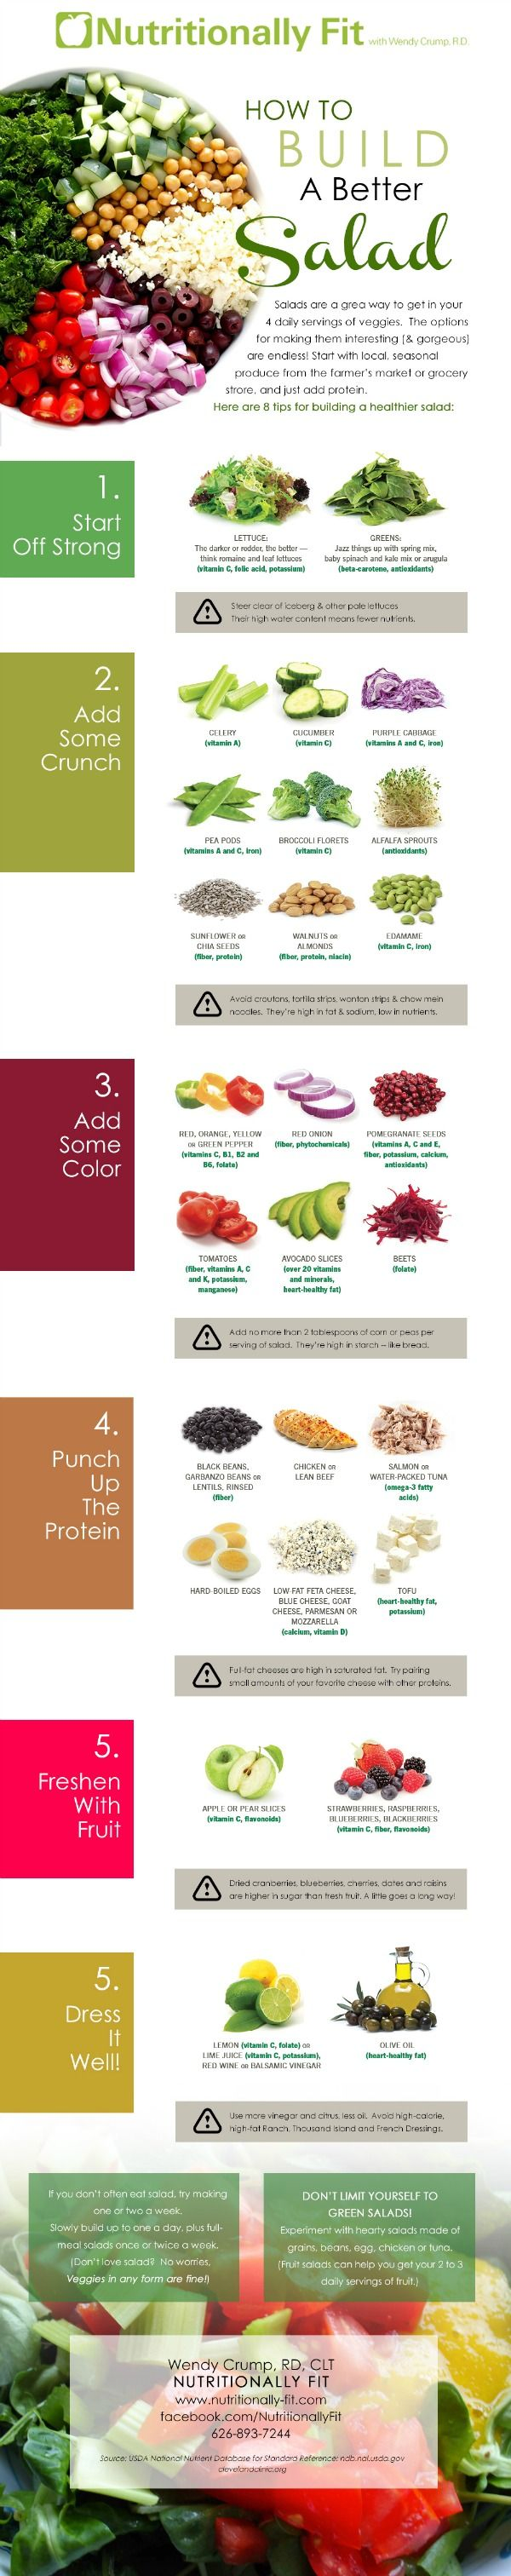 How to build a better salad infographic #nutrition #healthyeating